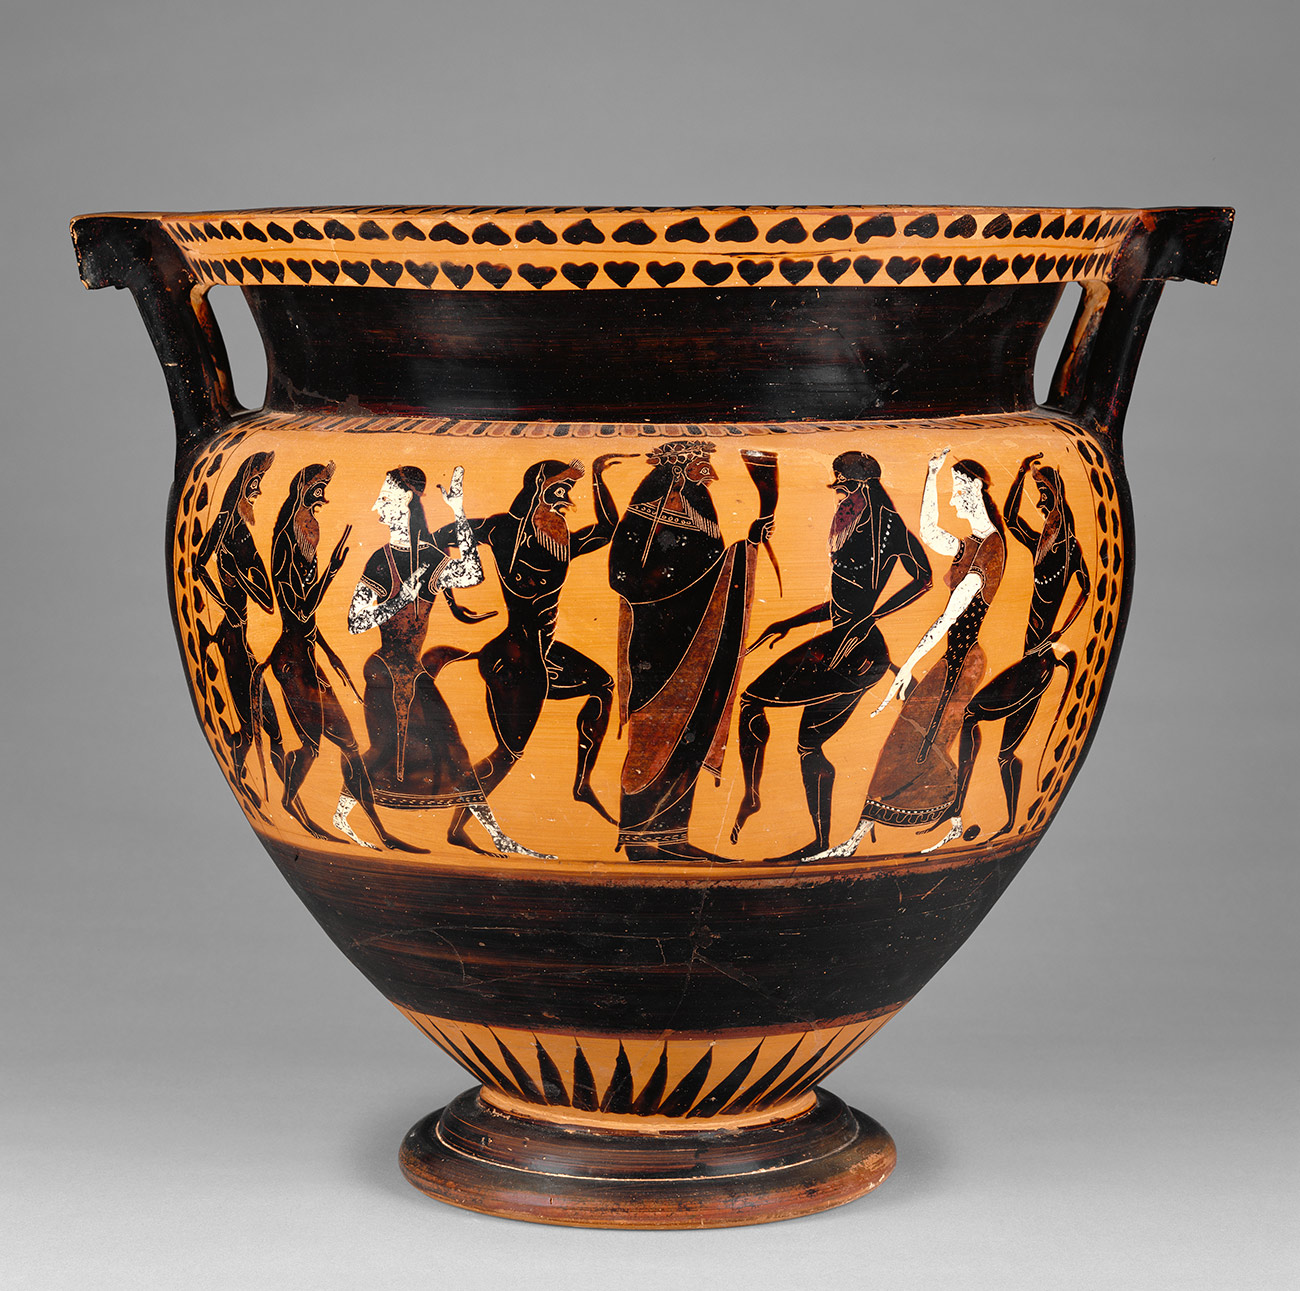 Figures dancing on a vase. Two figures are white, the other six are painted black. Amber background.